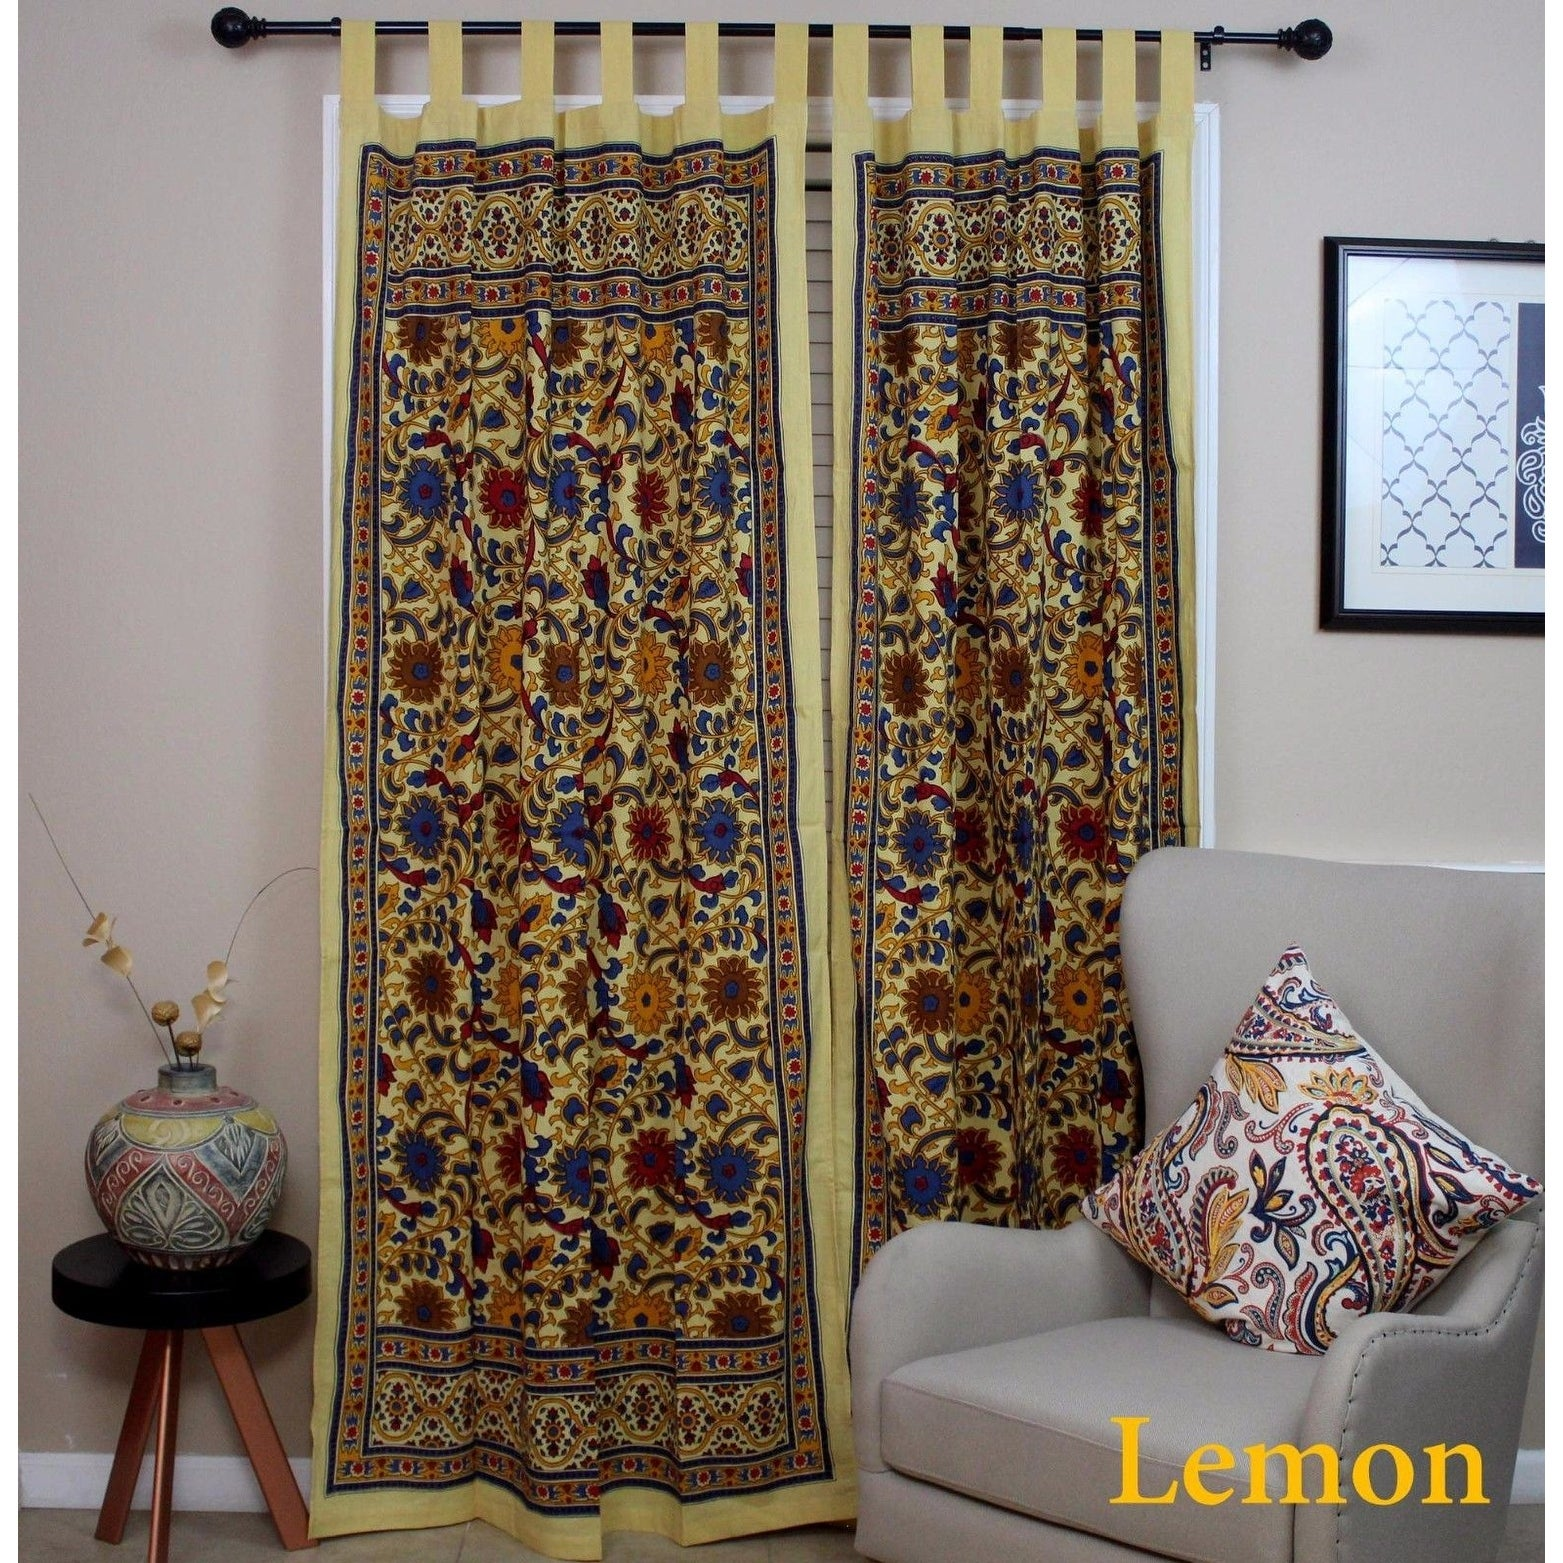 Handmade 100% Cotton Sunflower Floral Tab Top Curtain Drape Door Panel Navy Blue Gray Yellow Black Red 44x88 Inches - Thumbnail 1